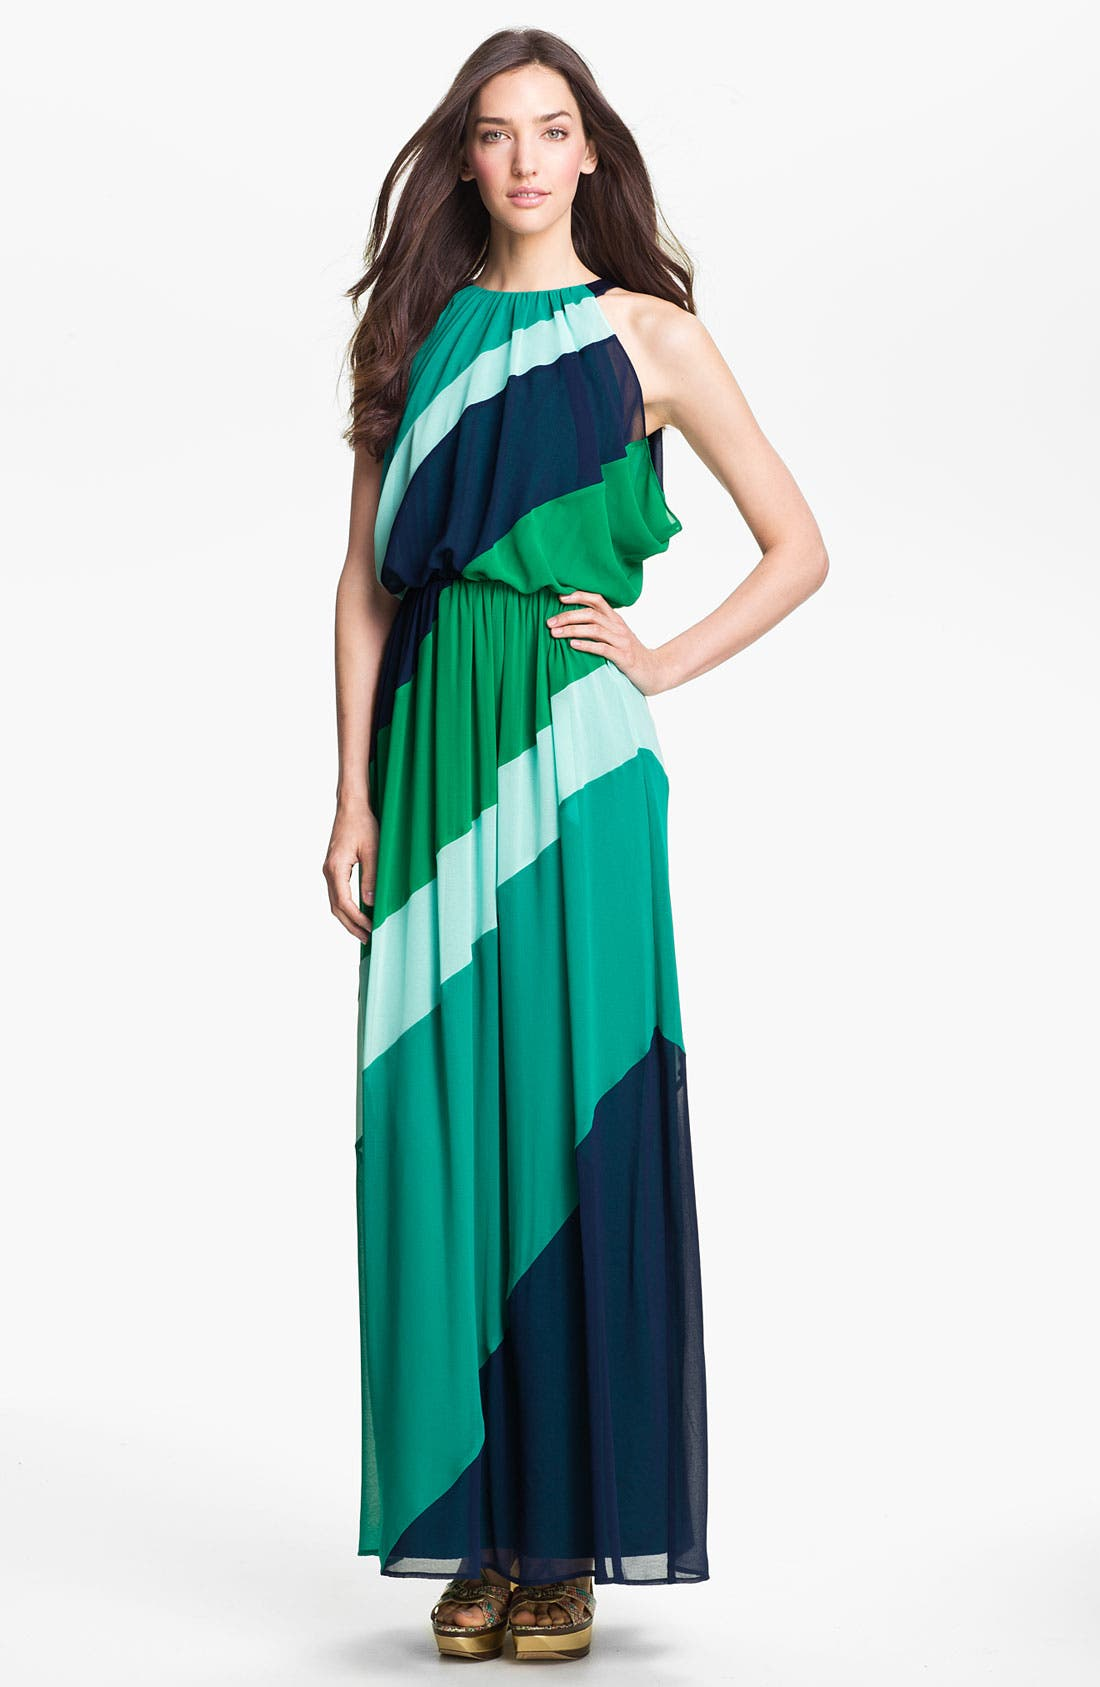 Alternate Image 1 Selected - Vince Camuto Diagonal Colorblock Chiffon Maxi Dress